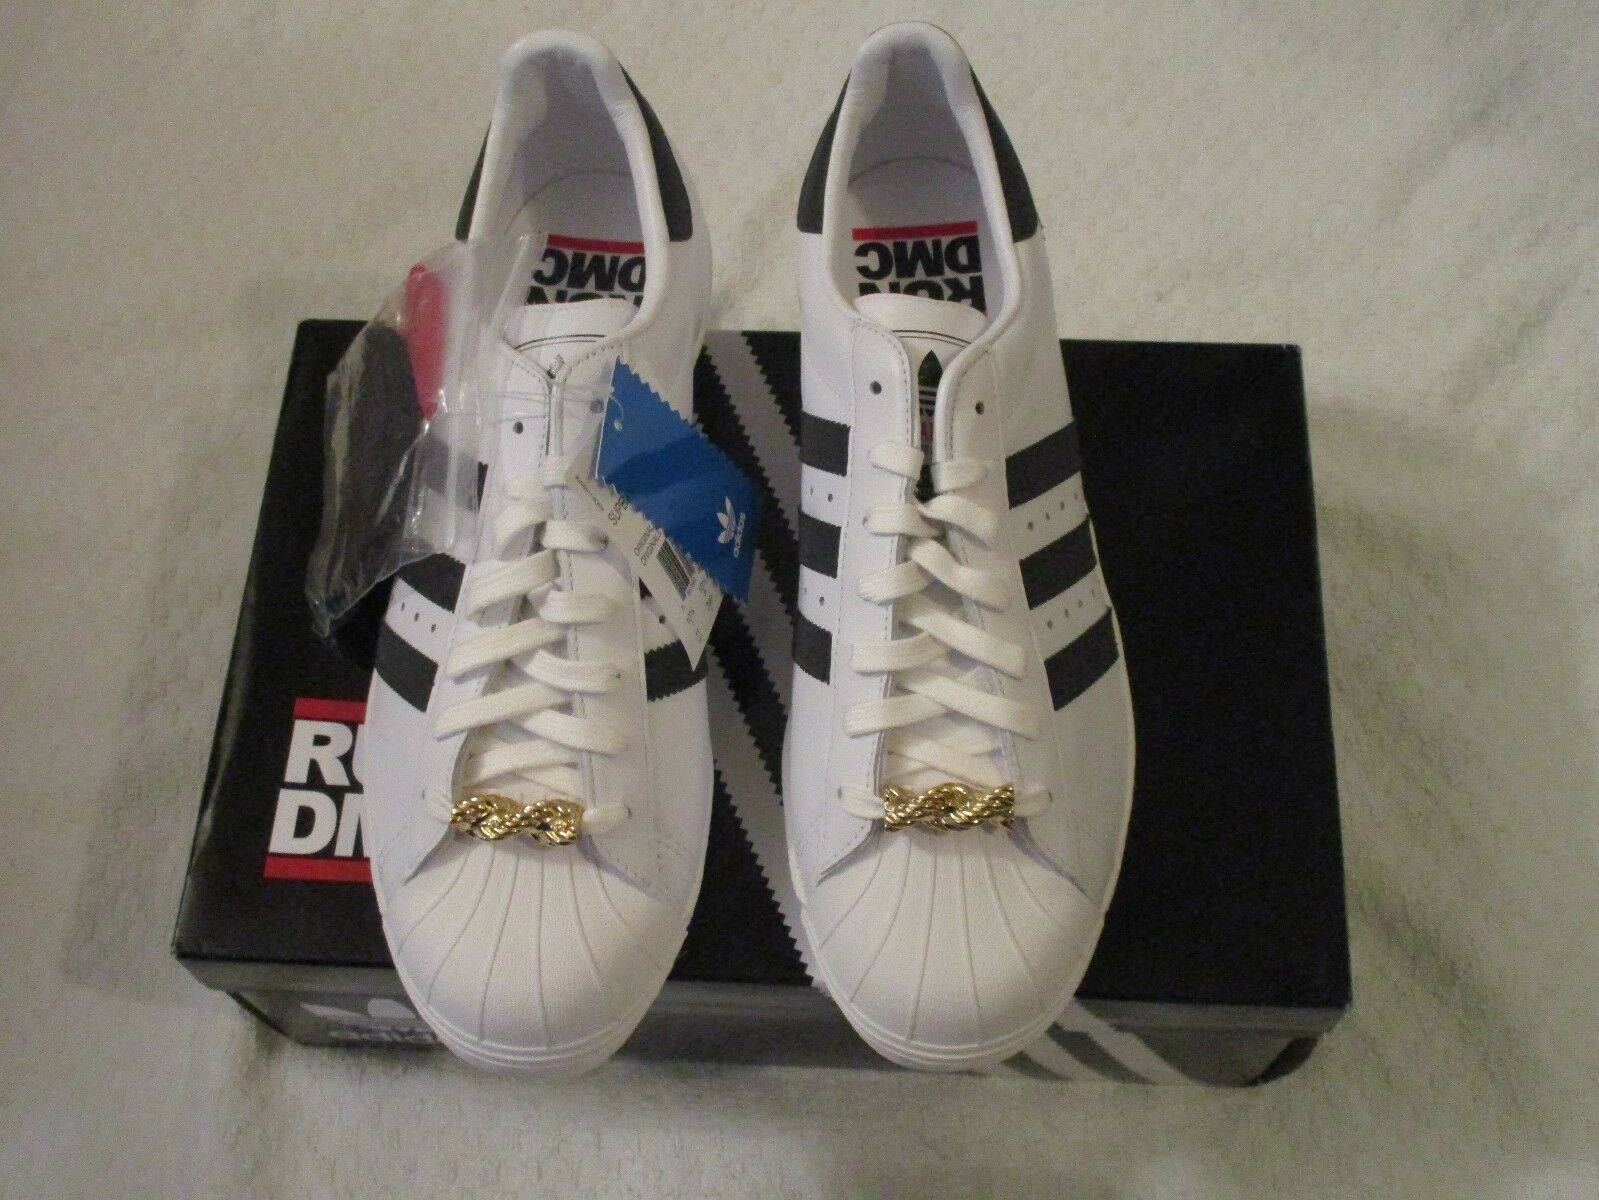 My Adidas SUPERSTAR 80s RUN DMC 25th Anniversary Originals G48910 Size 11